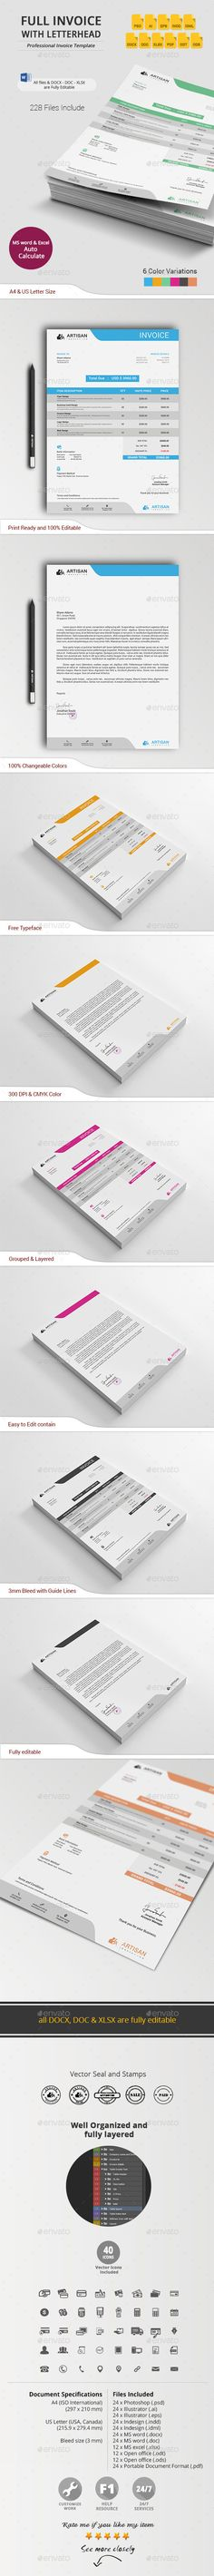 #Invoice with #Letterhead - #Proposals & Invoices #Stationery Download here: https://graphicriver.net/item/invoice-with-letterhead/11005806?ref=alena994